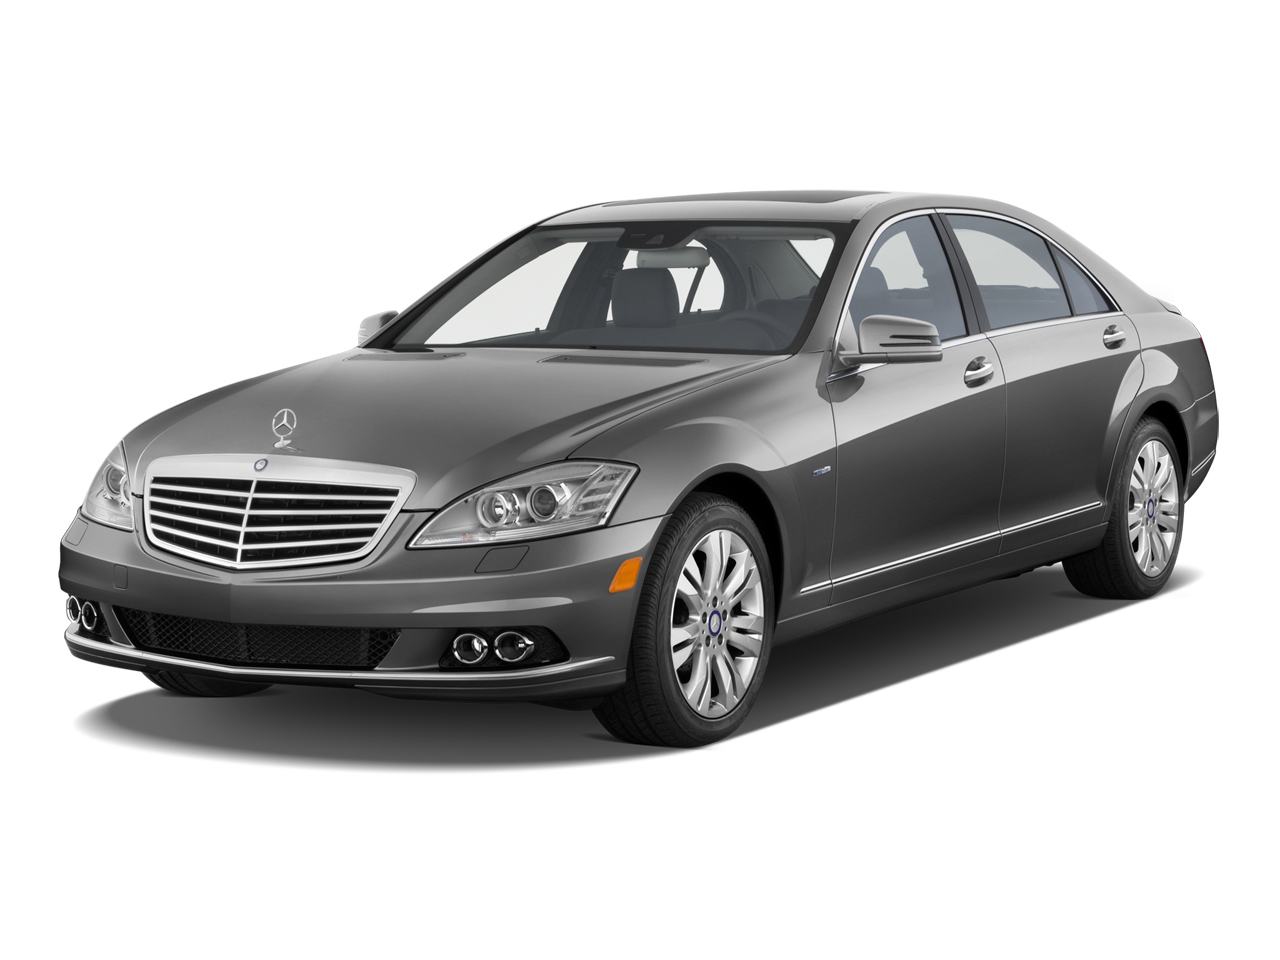 2012 mercedes benz s class review ratings specs prices for Mercedes benz 2012 price